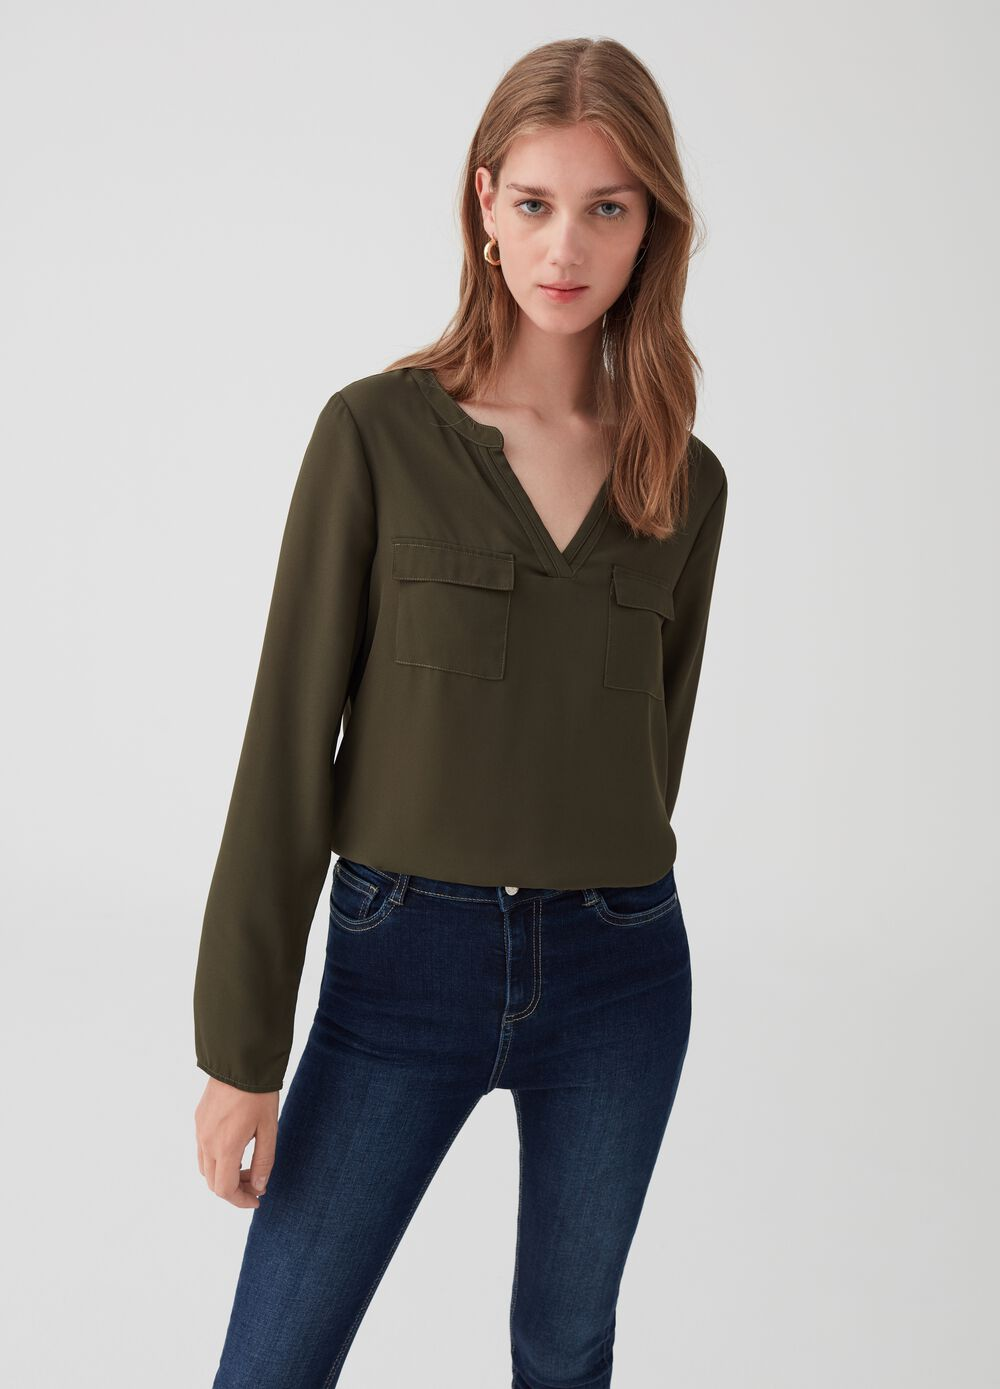 V-neck crêpe blouse with pockets